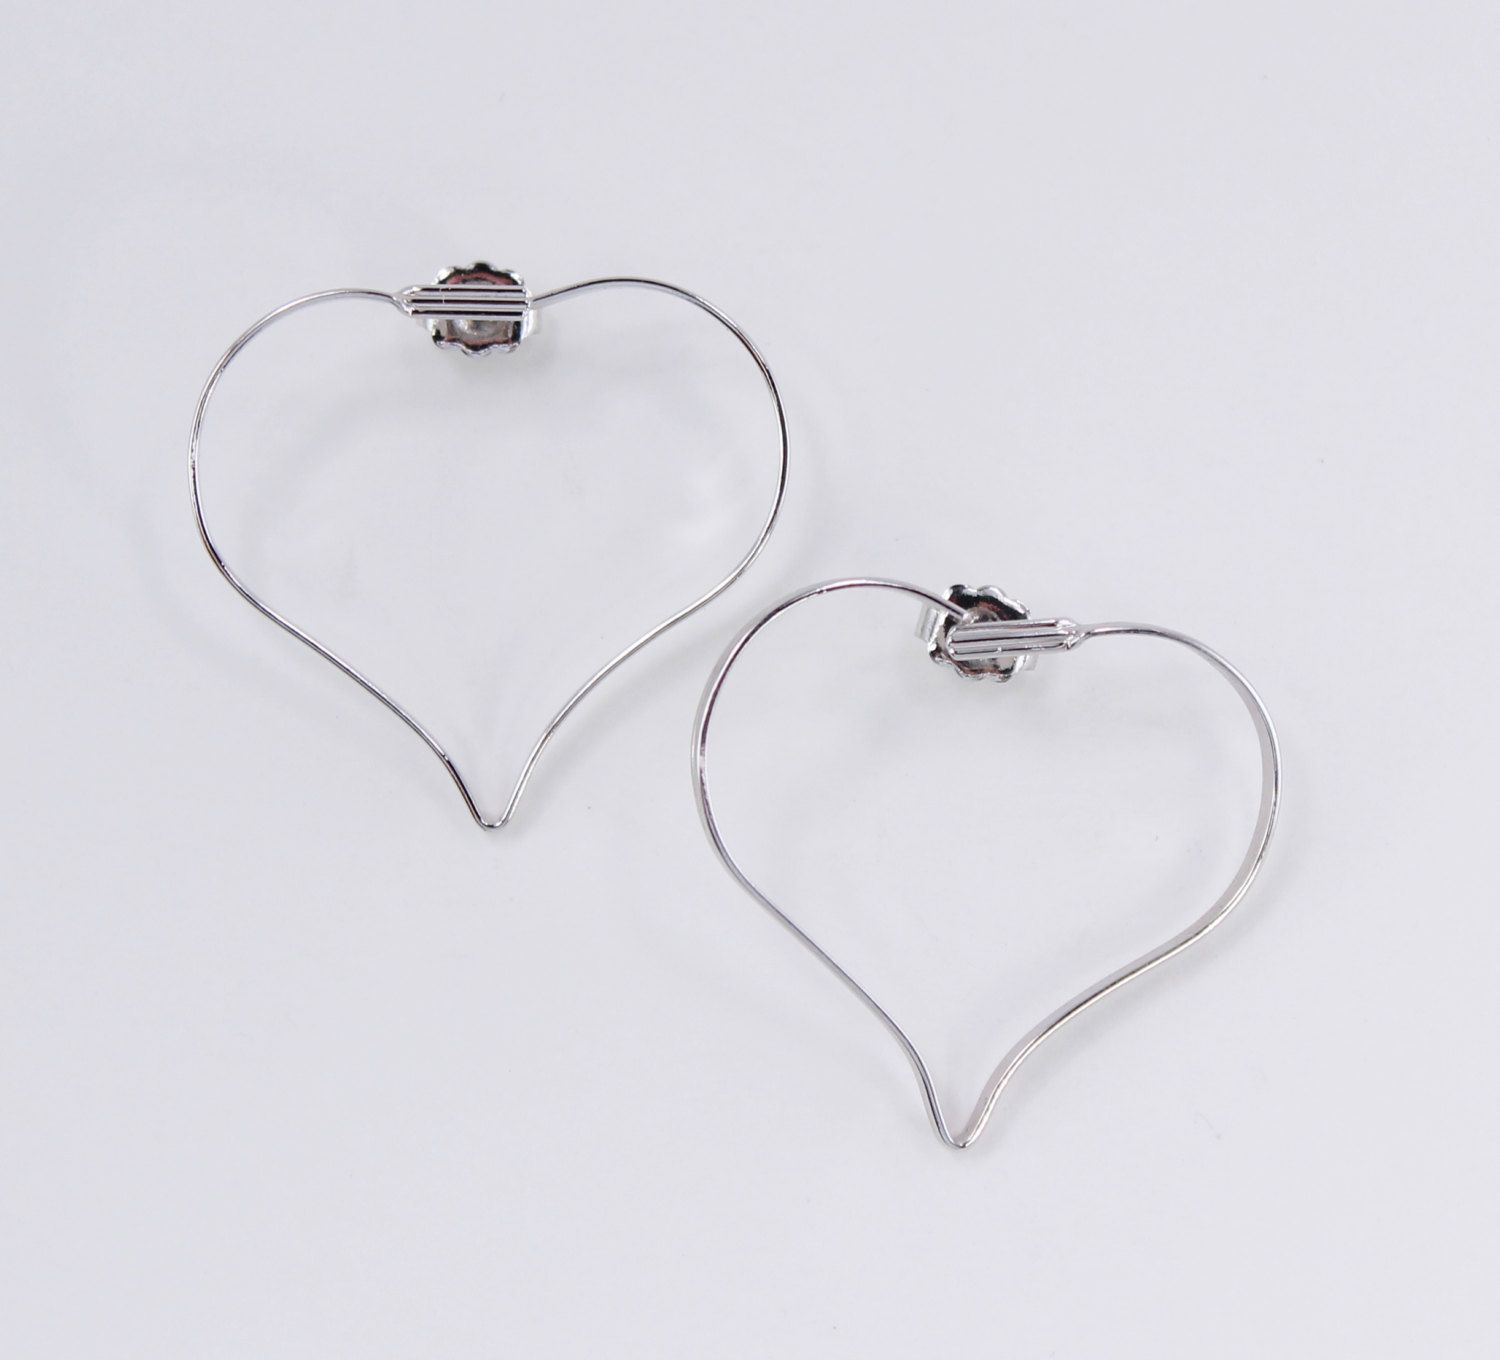 Vintage 1977 Signed Avon Touchpoints Silvertone Large Thin Metal Heart Hoop Minimalist Silver Tone Pierced Earrings Original Box NIB by ThePaisleyUnicorn on Etsy